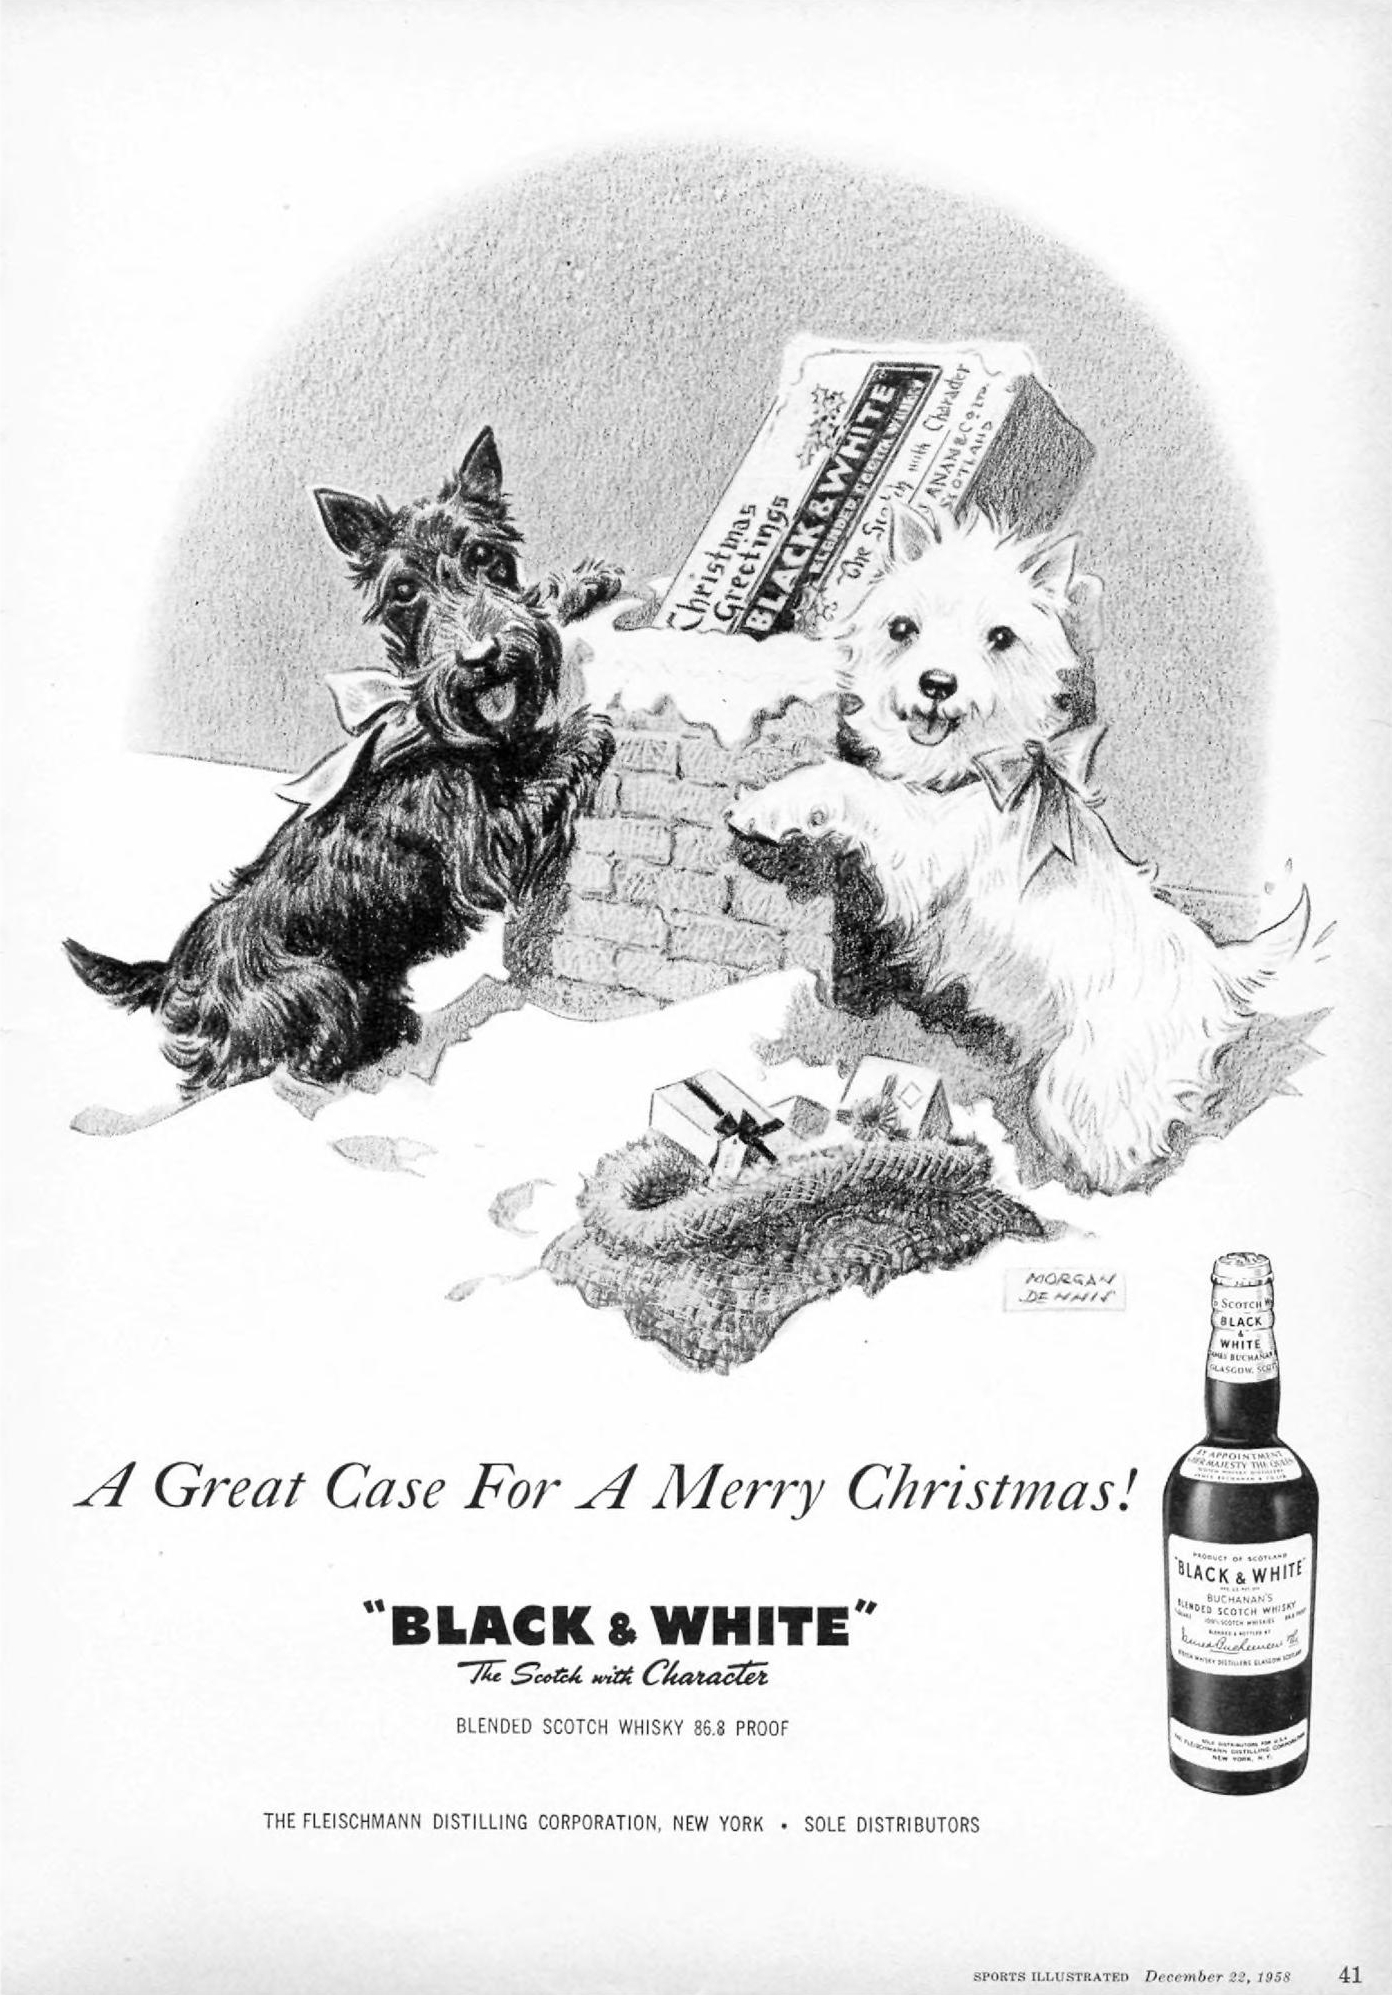 Black and White - published in Sports Illustrated - December 22, 1958